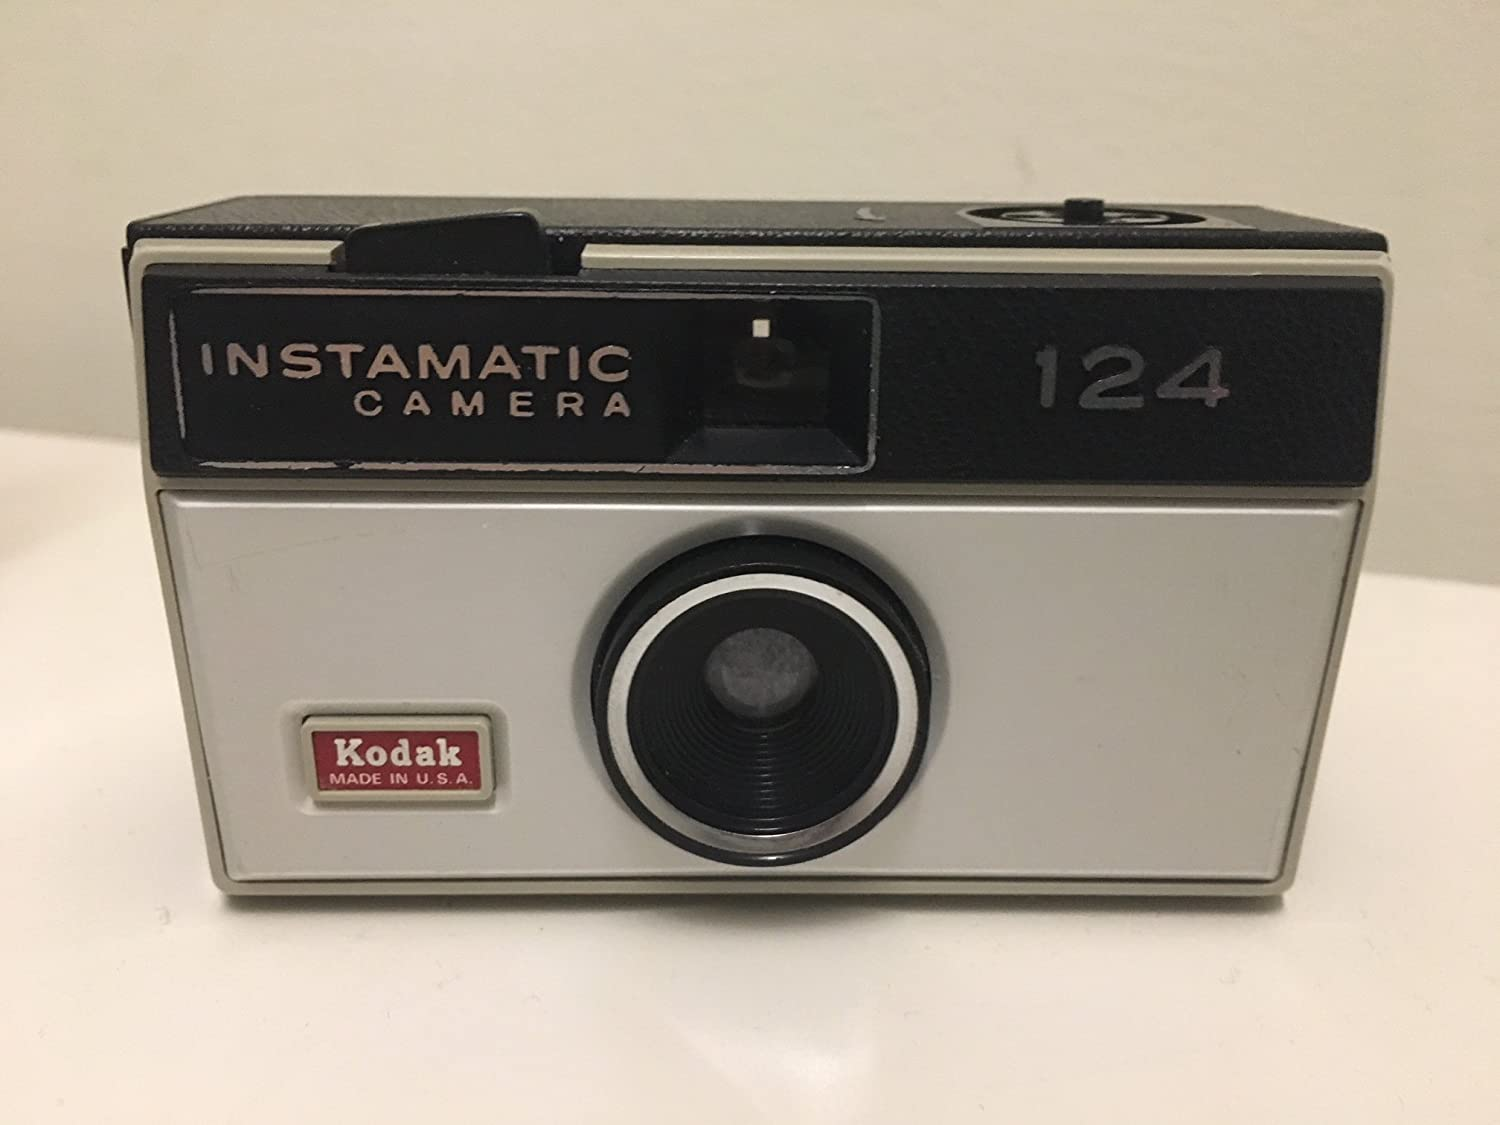 kodak instamatic was a toy you had to read the directions to play with.